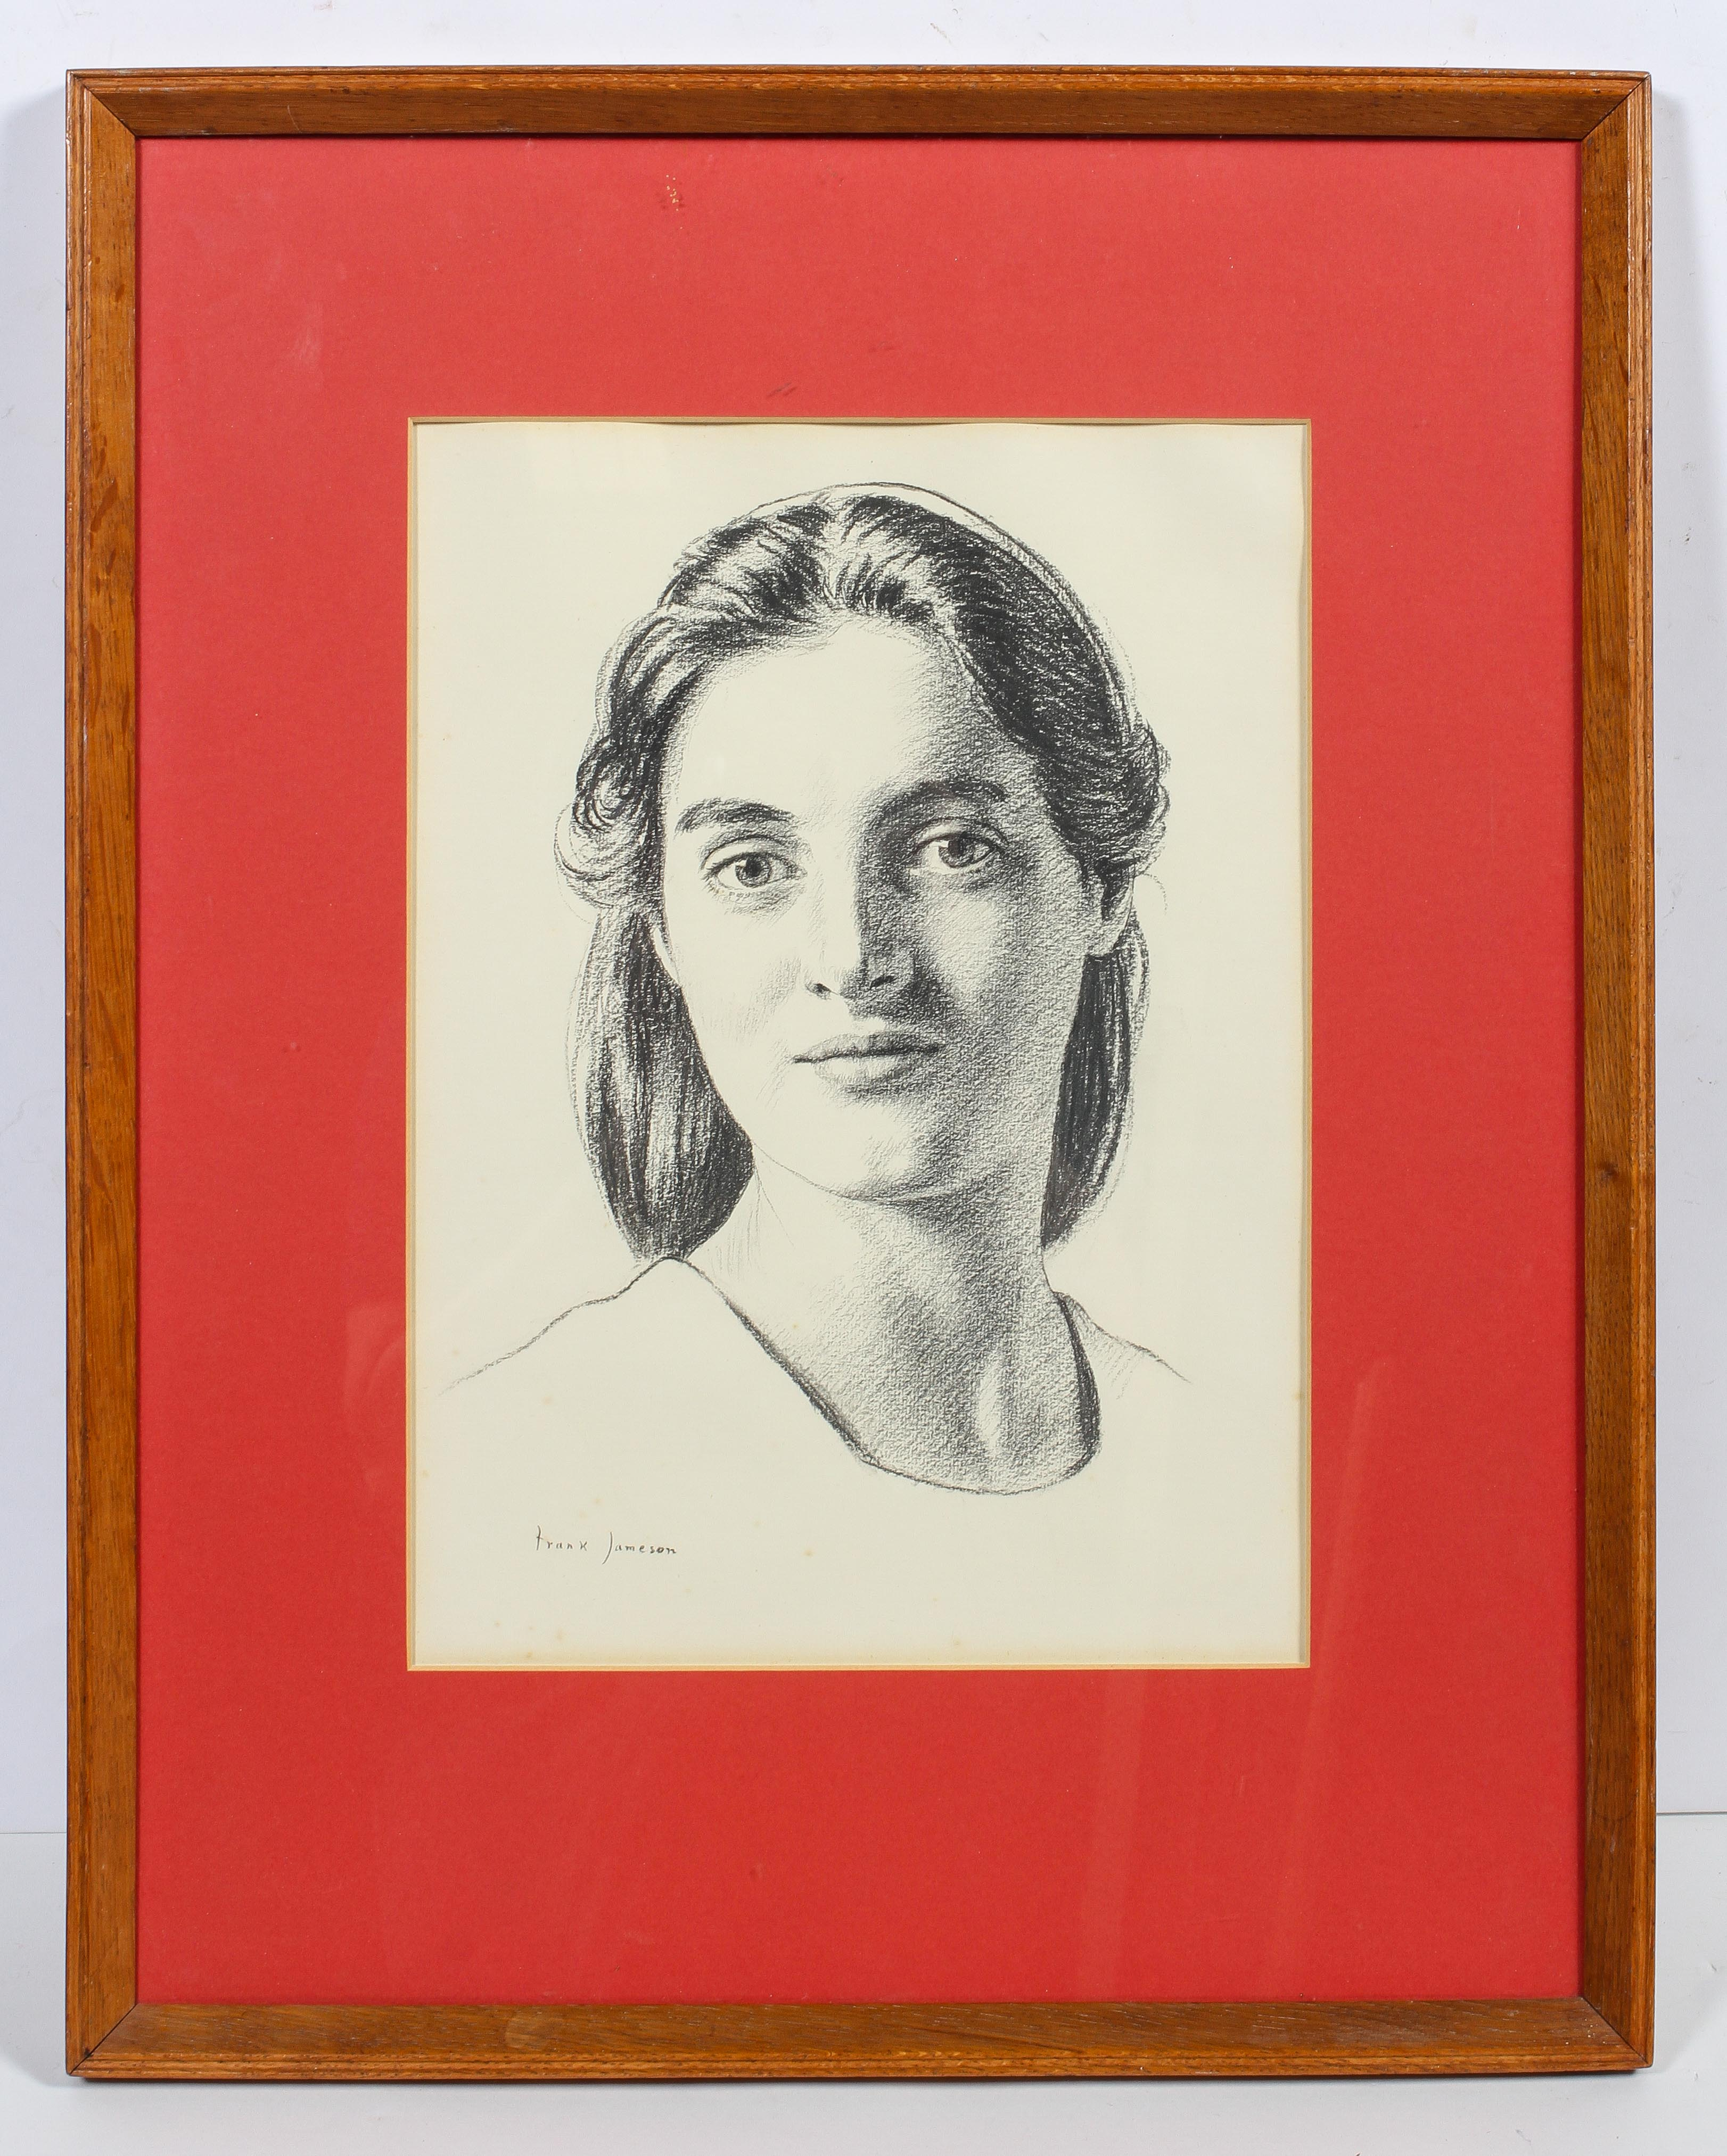 Frank Jameson, pencil portrait of his daughter, signed lower right, glazed and framed, - Image 2 of 4